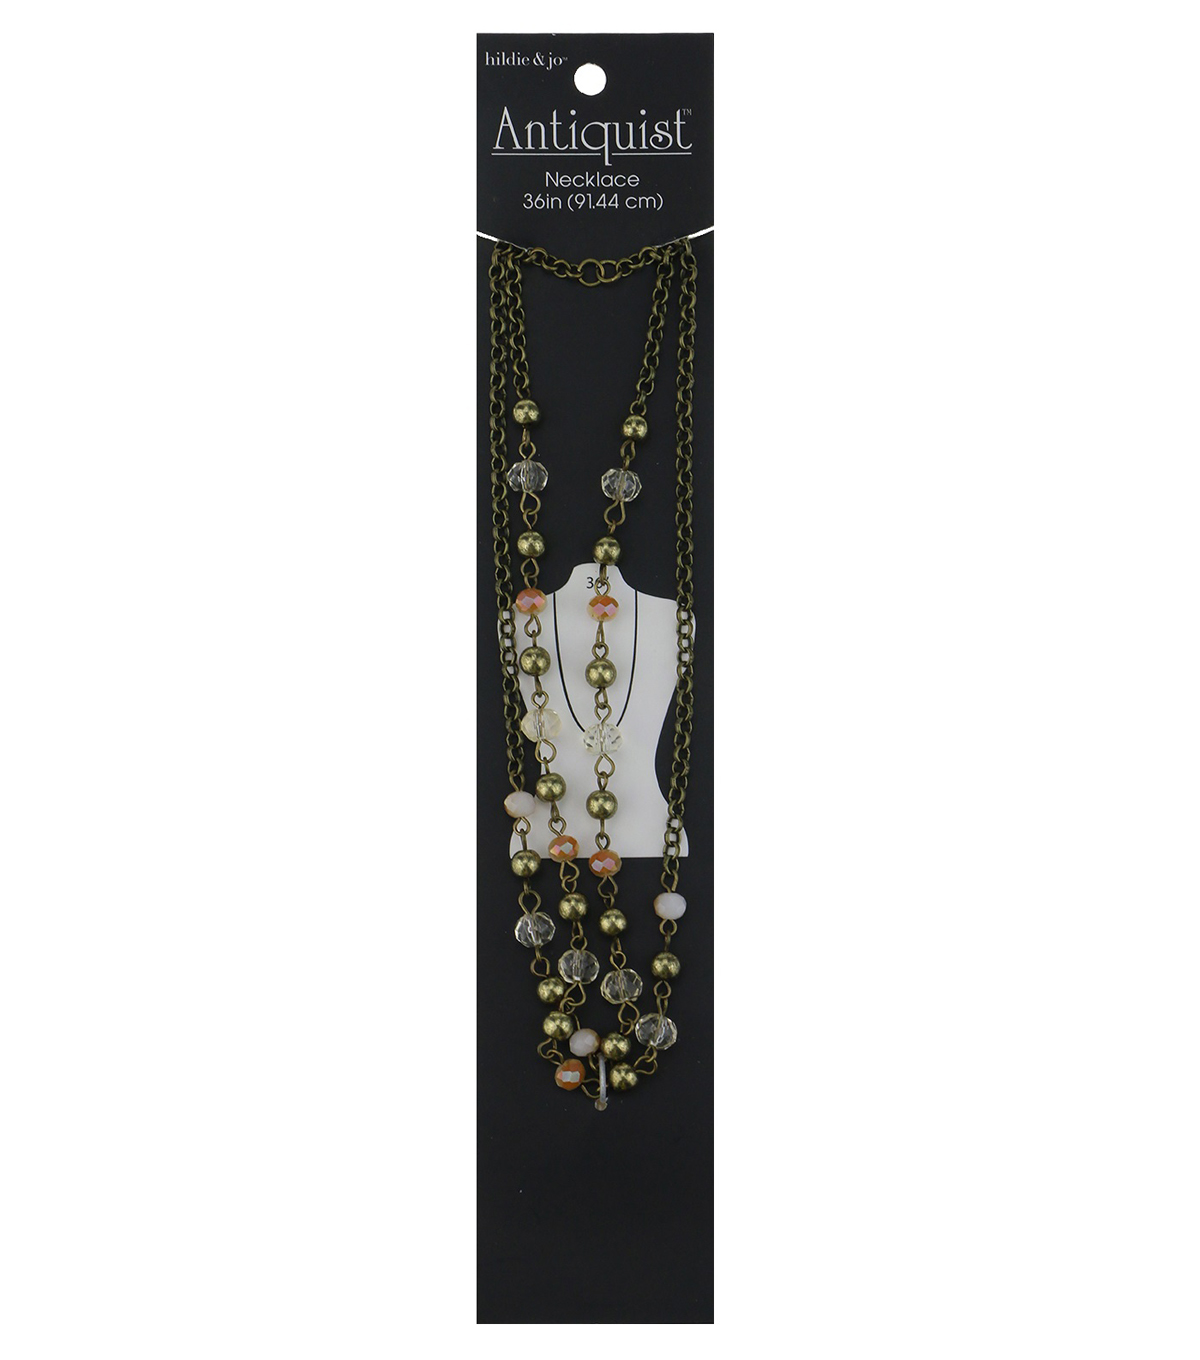 hildie & jo Antiquist 36\u0027\u0027 Antique Gold Necklace-Multi Beads